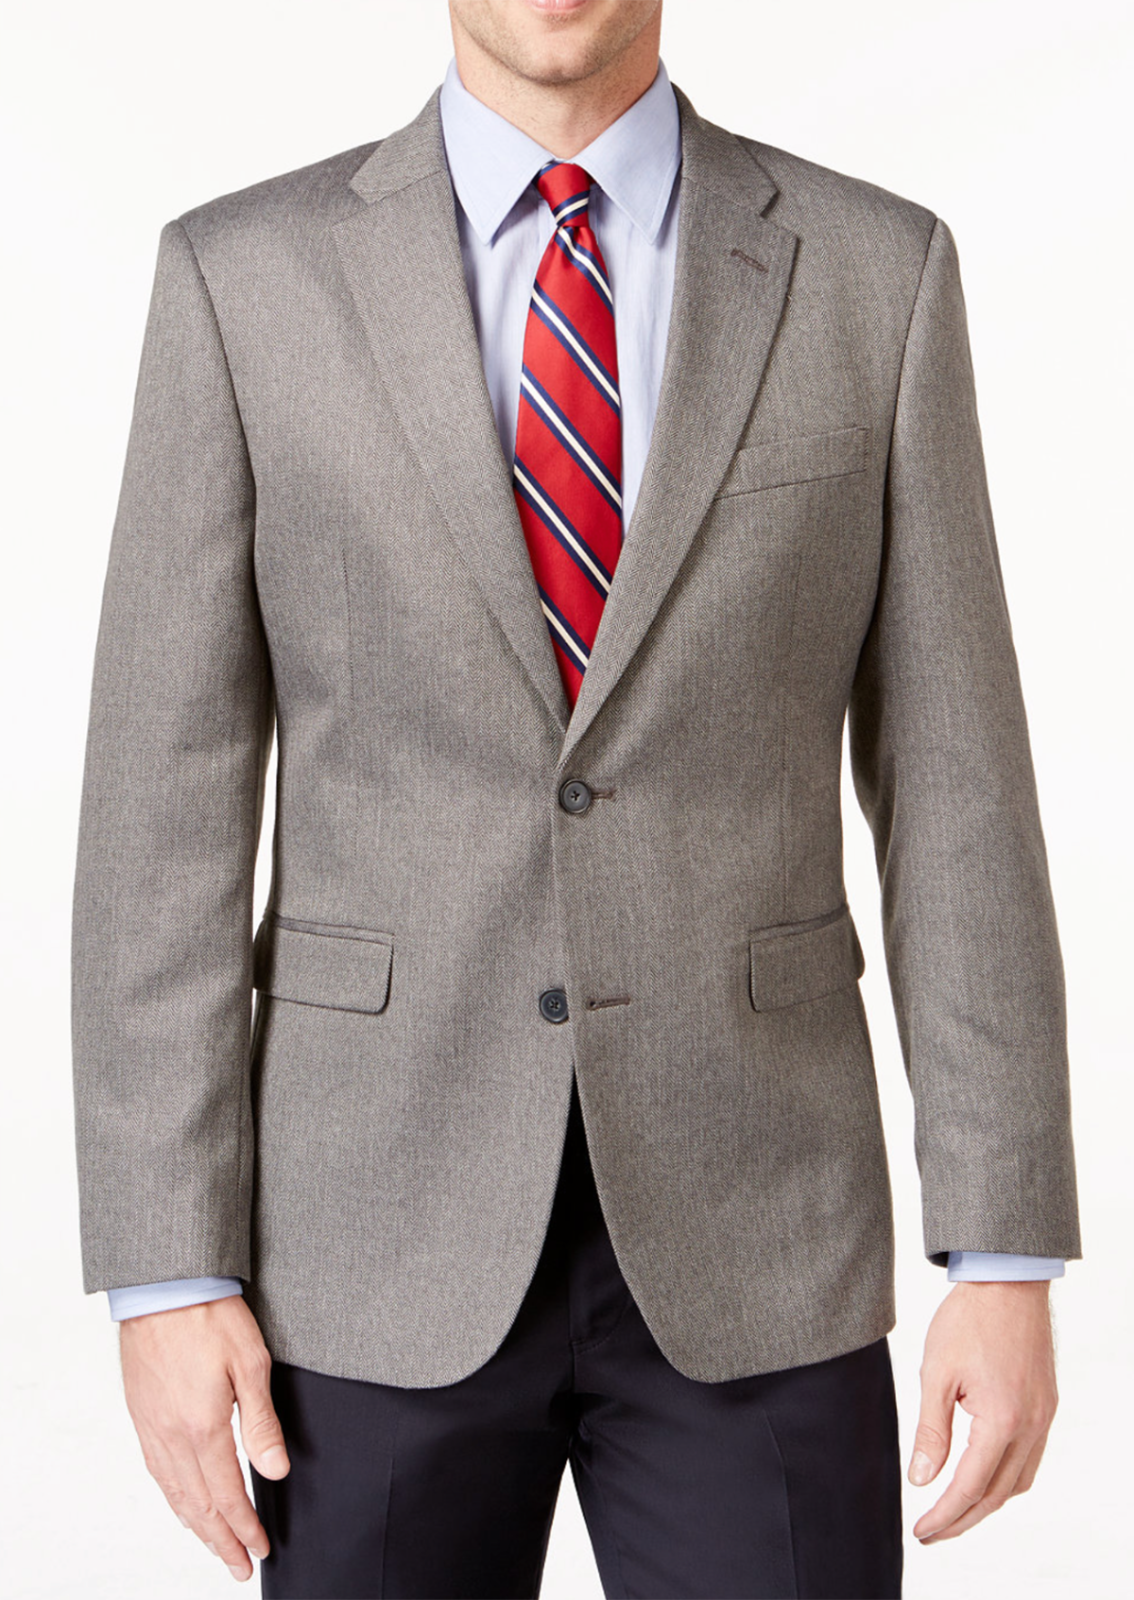 NEW MENS TOMMY HILFIGER TWO BUTTON GREY HERRINGBONE SPORT COAT BLAZER 40 L $295